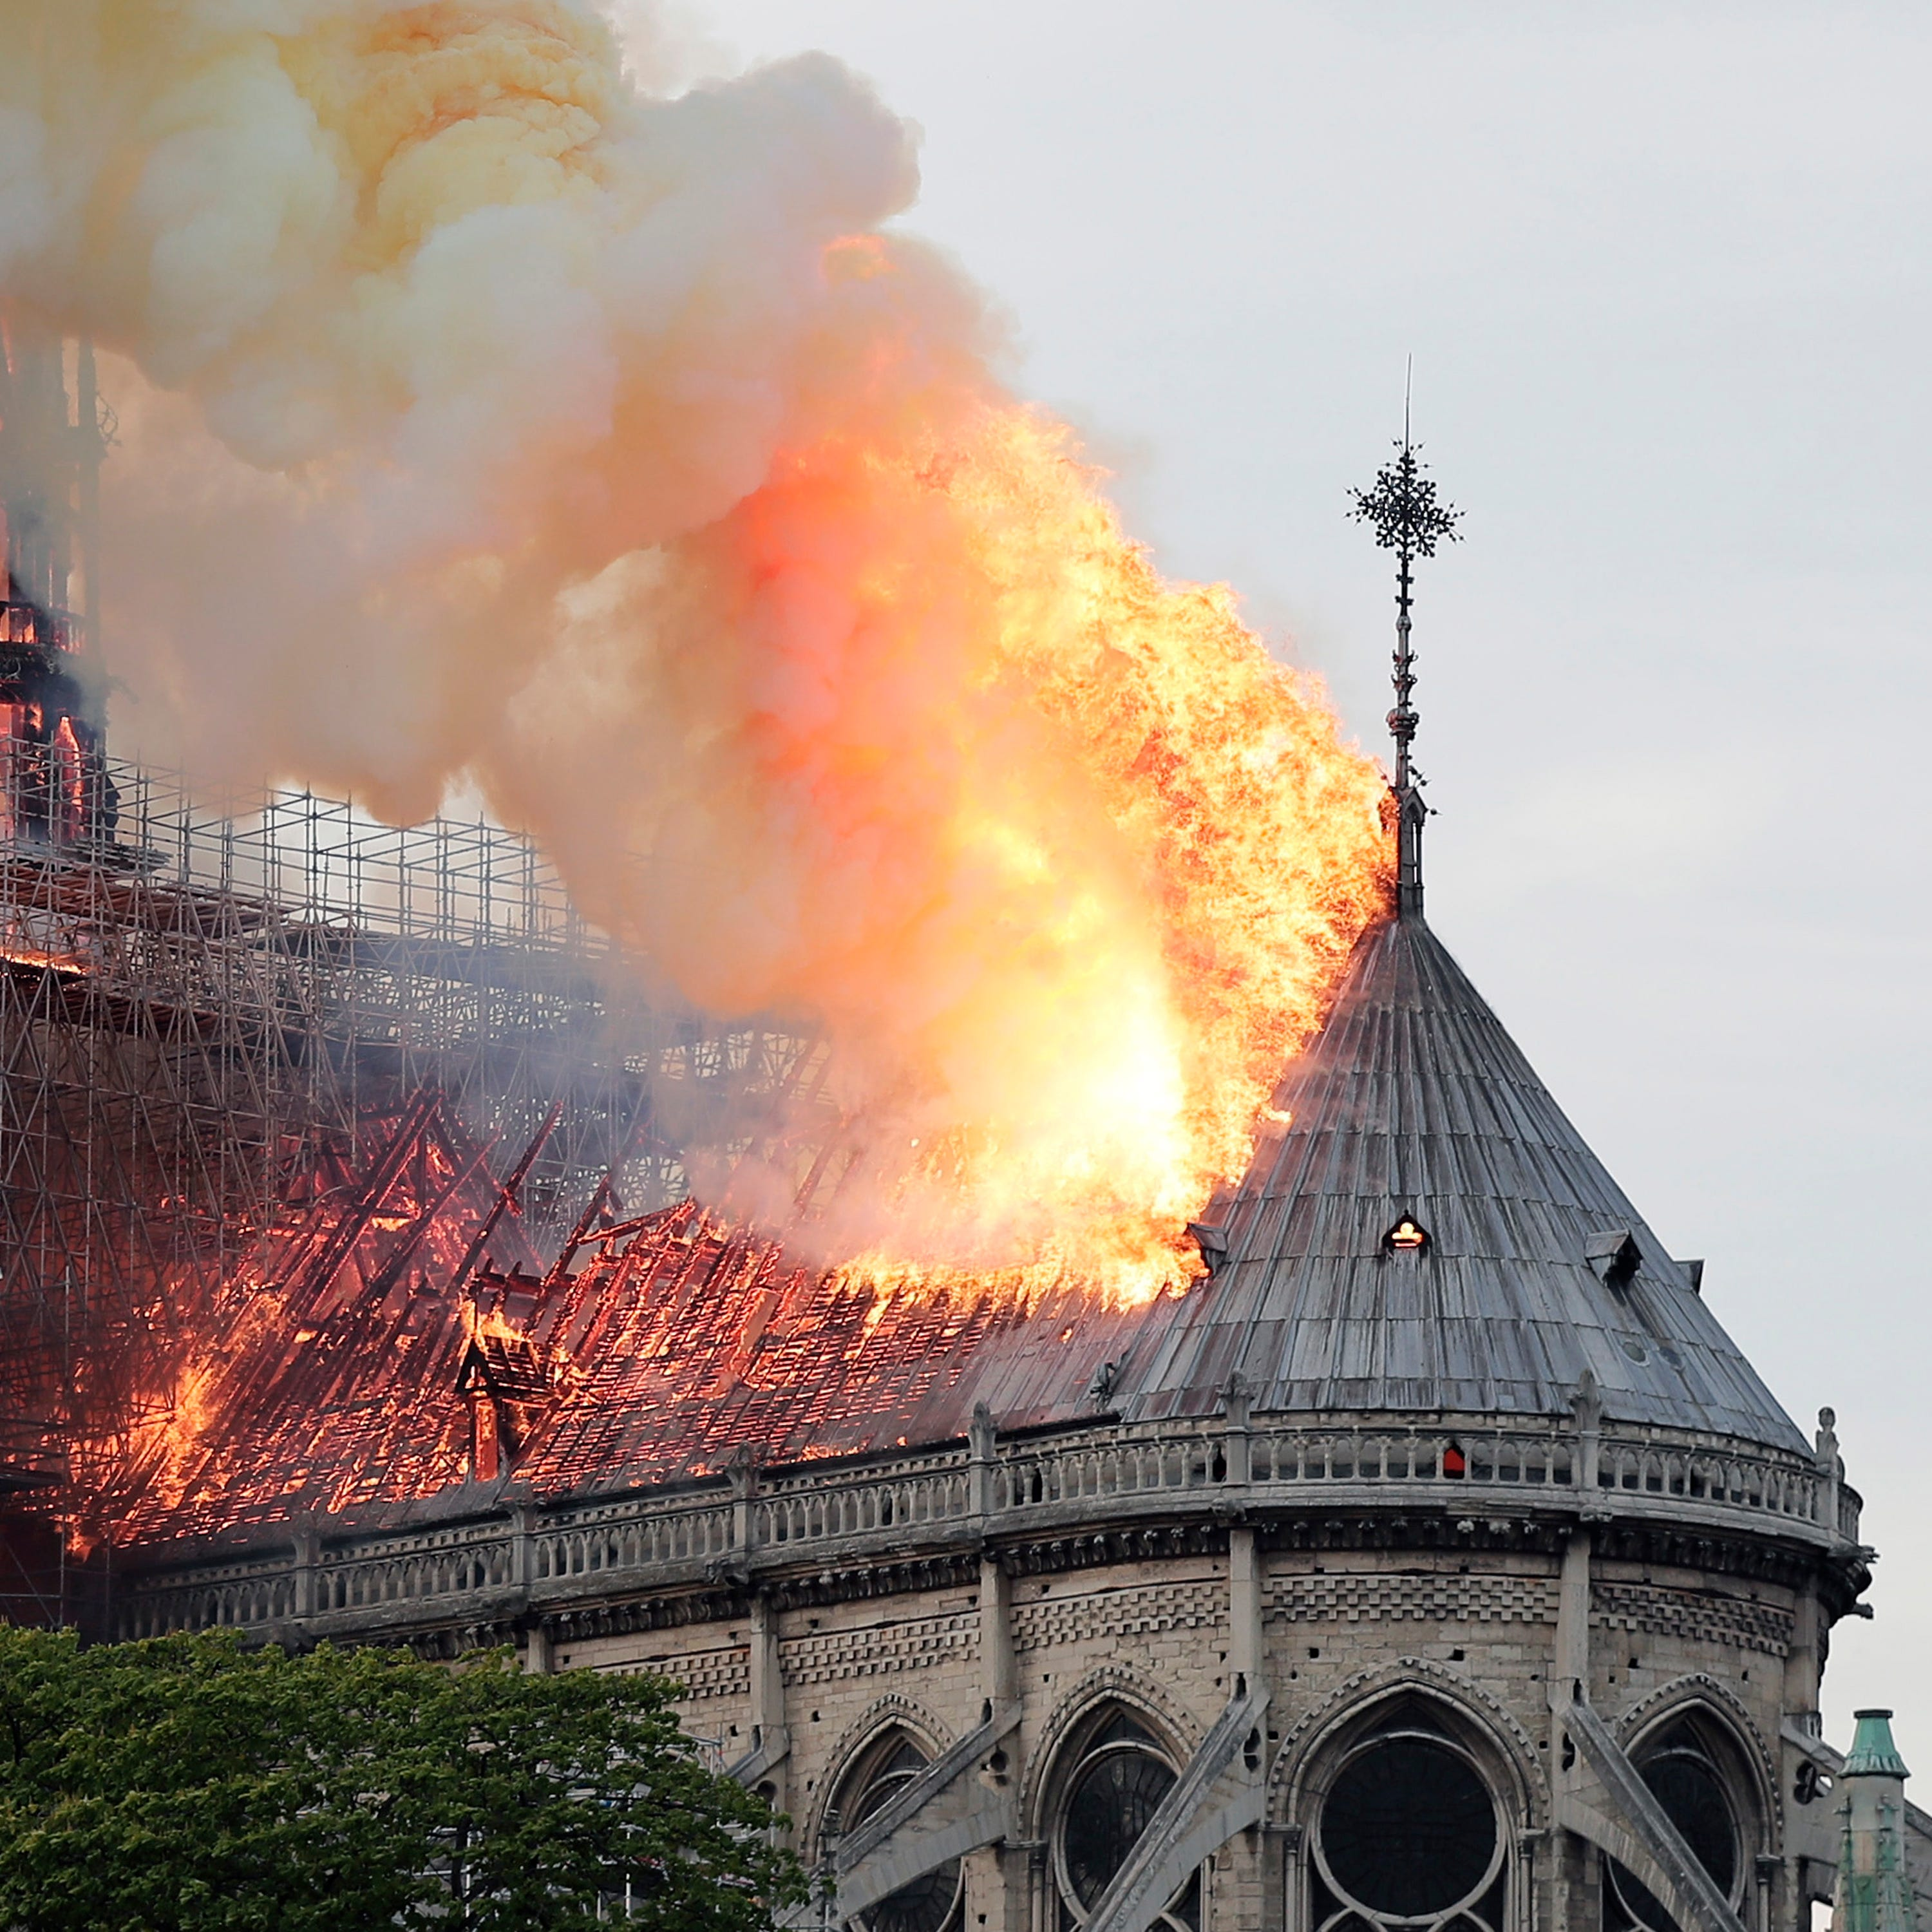 Hours after hearing worshippers, Hoosier native saw Notre Dame Cathedral in flames